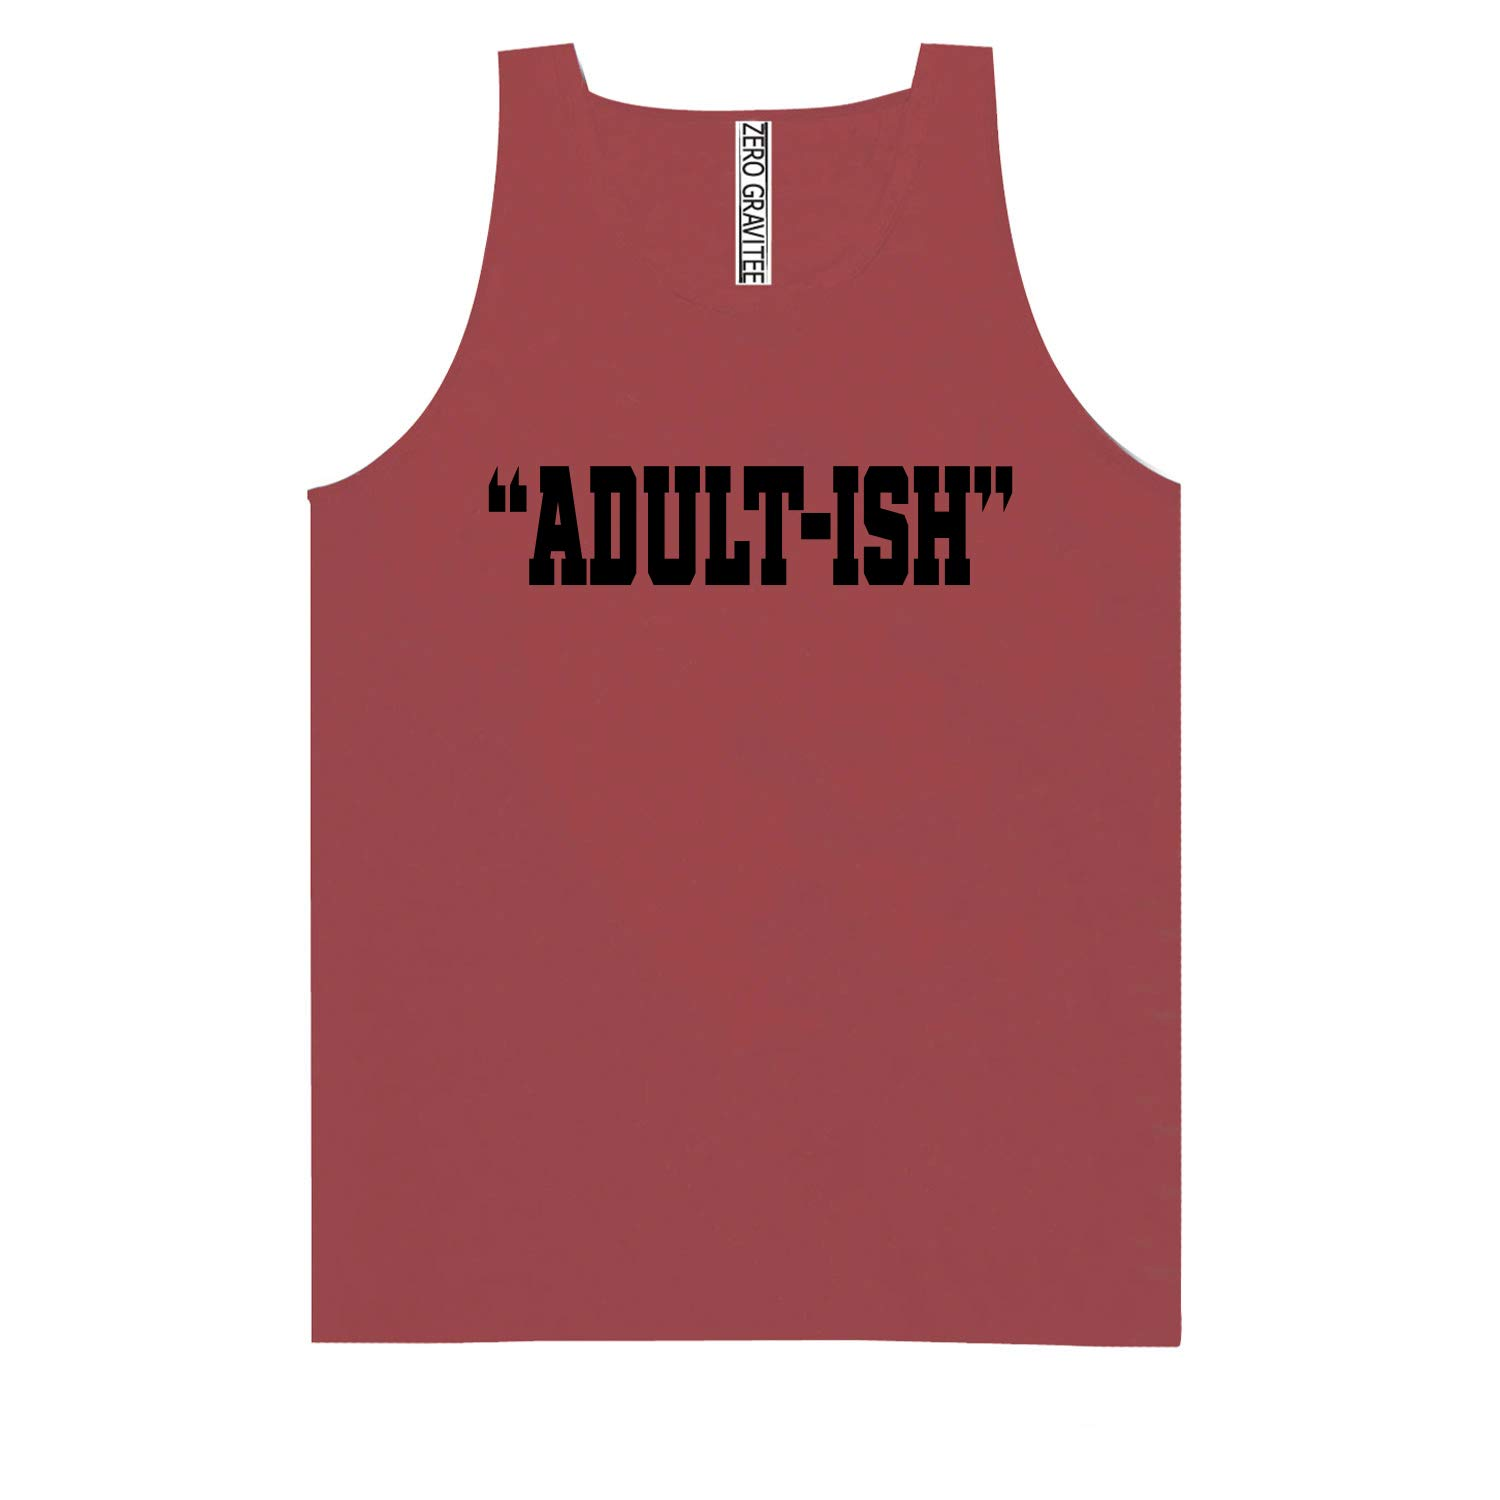 Adult-ISH Adult Pigment Dye Tank Top Black